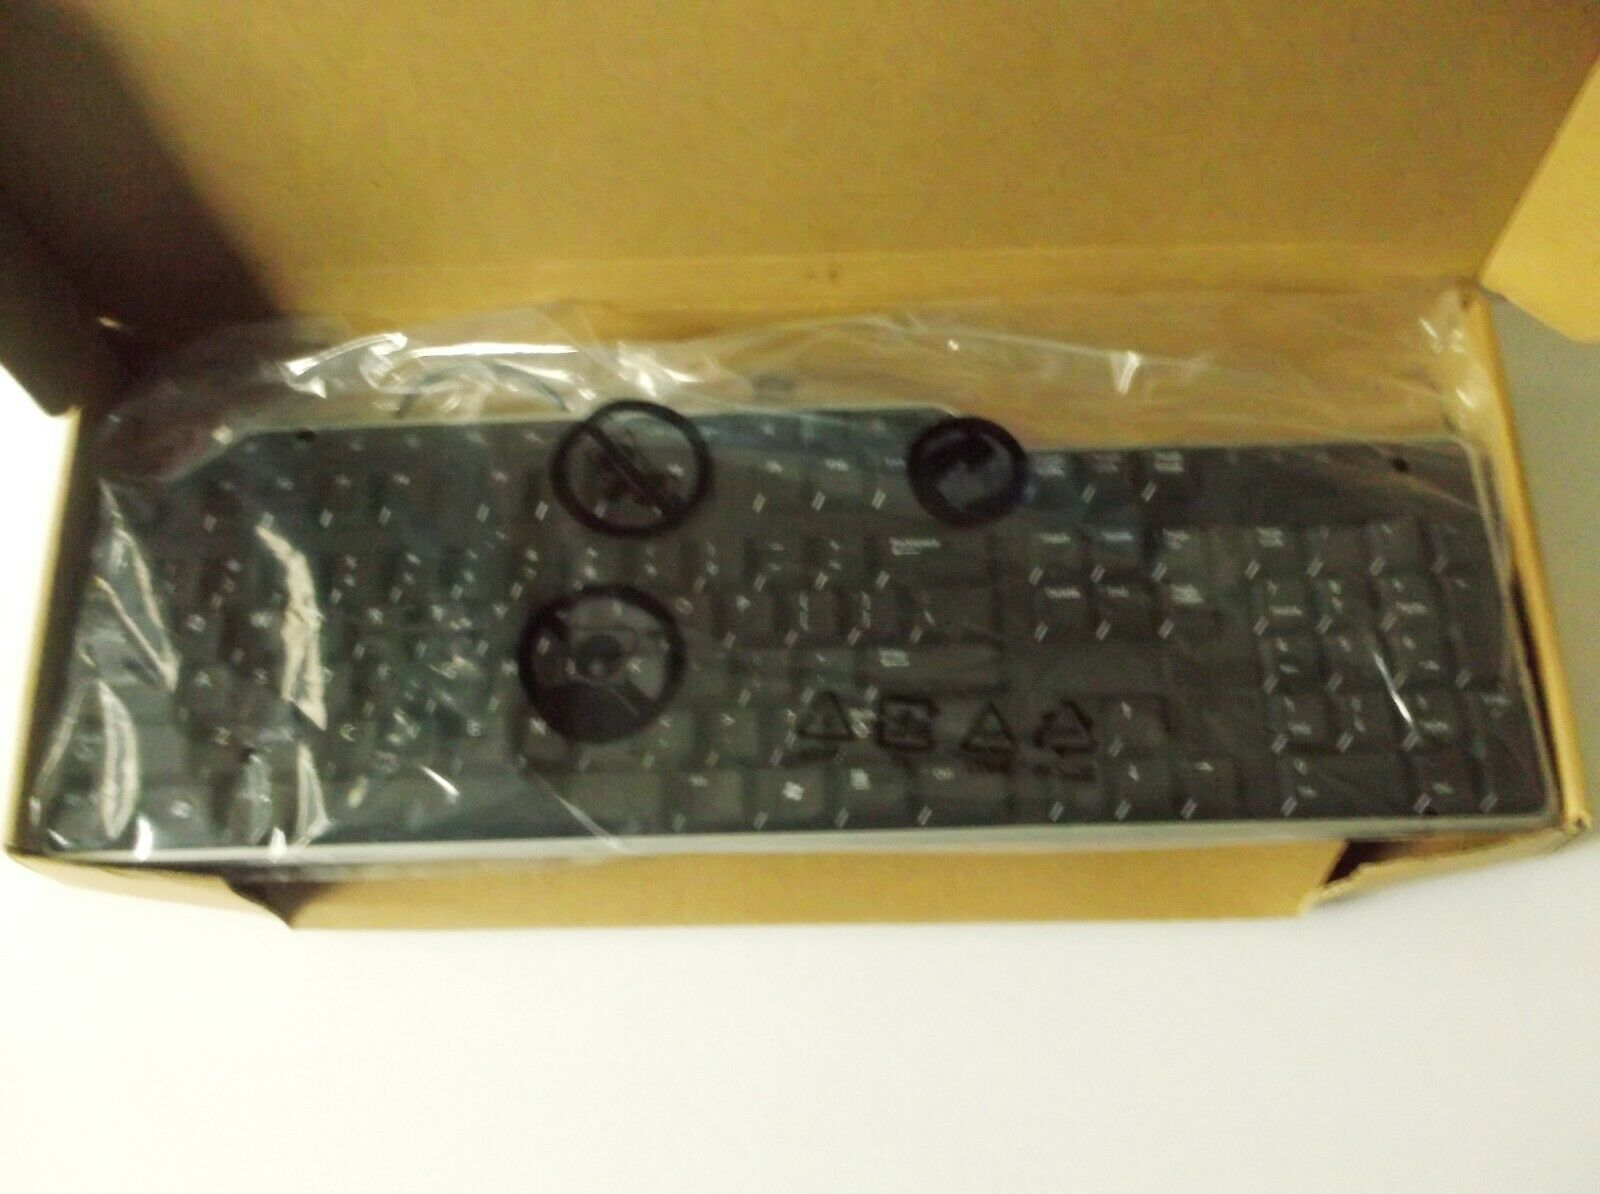 Dell 01RW52 Slim Black USB Multimedia Keyboard With Volume Control. Buy it now for 34.99